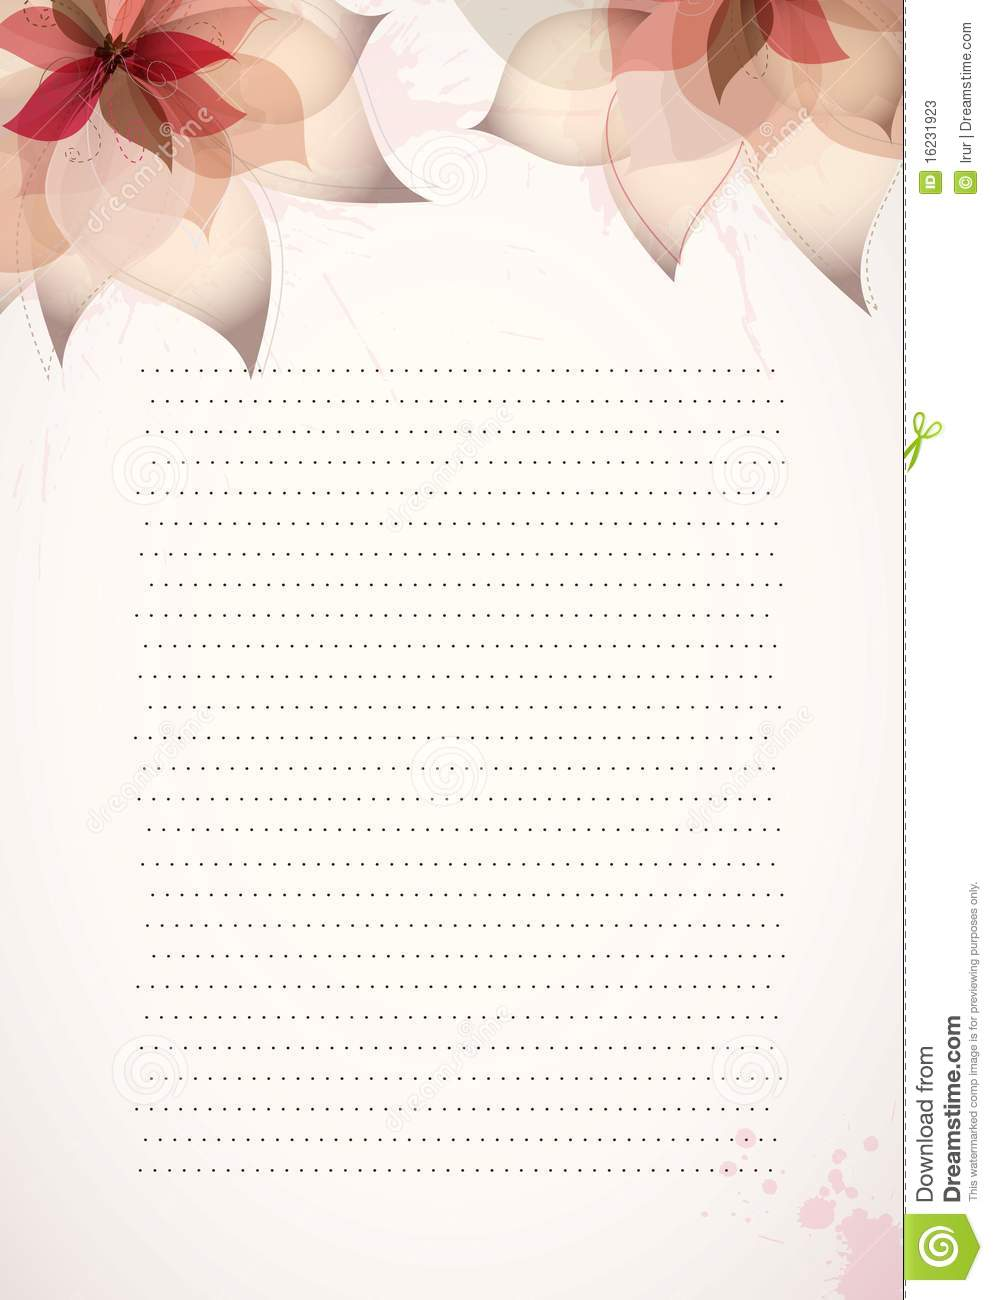 Paper Design Template With Flowers Stock Photos - Image: 16231923